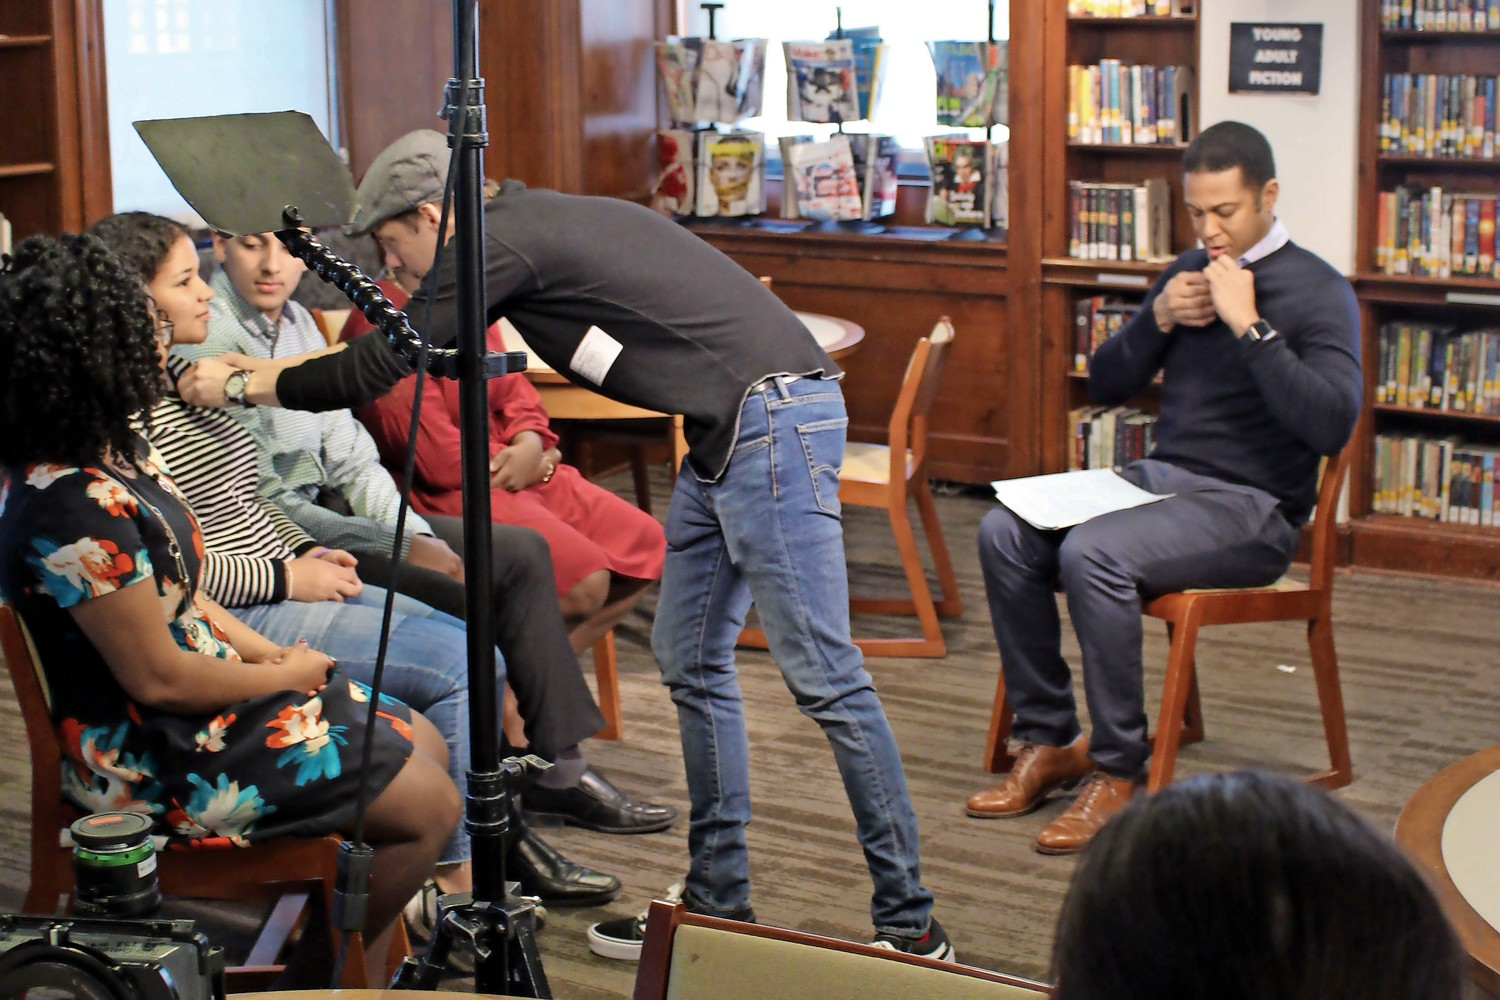 Before beginning their conversation, CNN anchor Don Lemon and students from Riverdale Country High School receive their microphones.